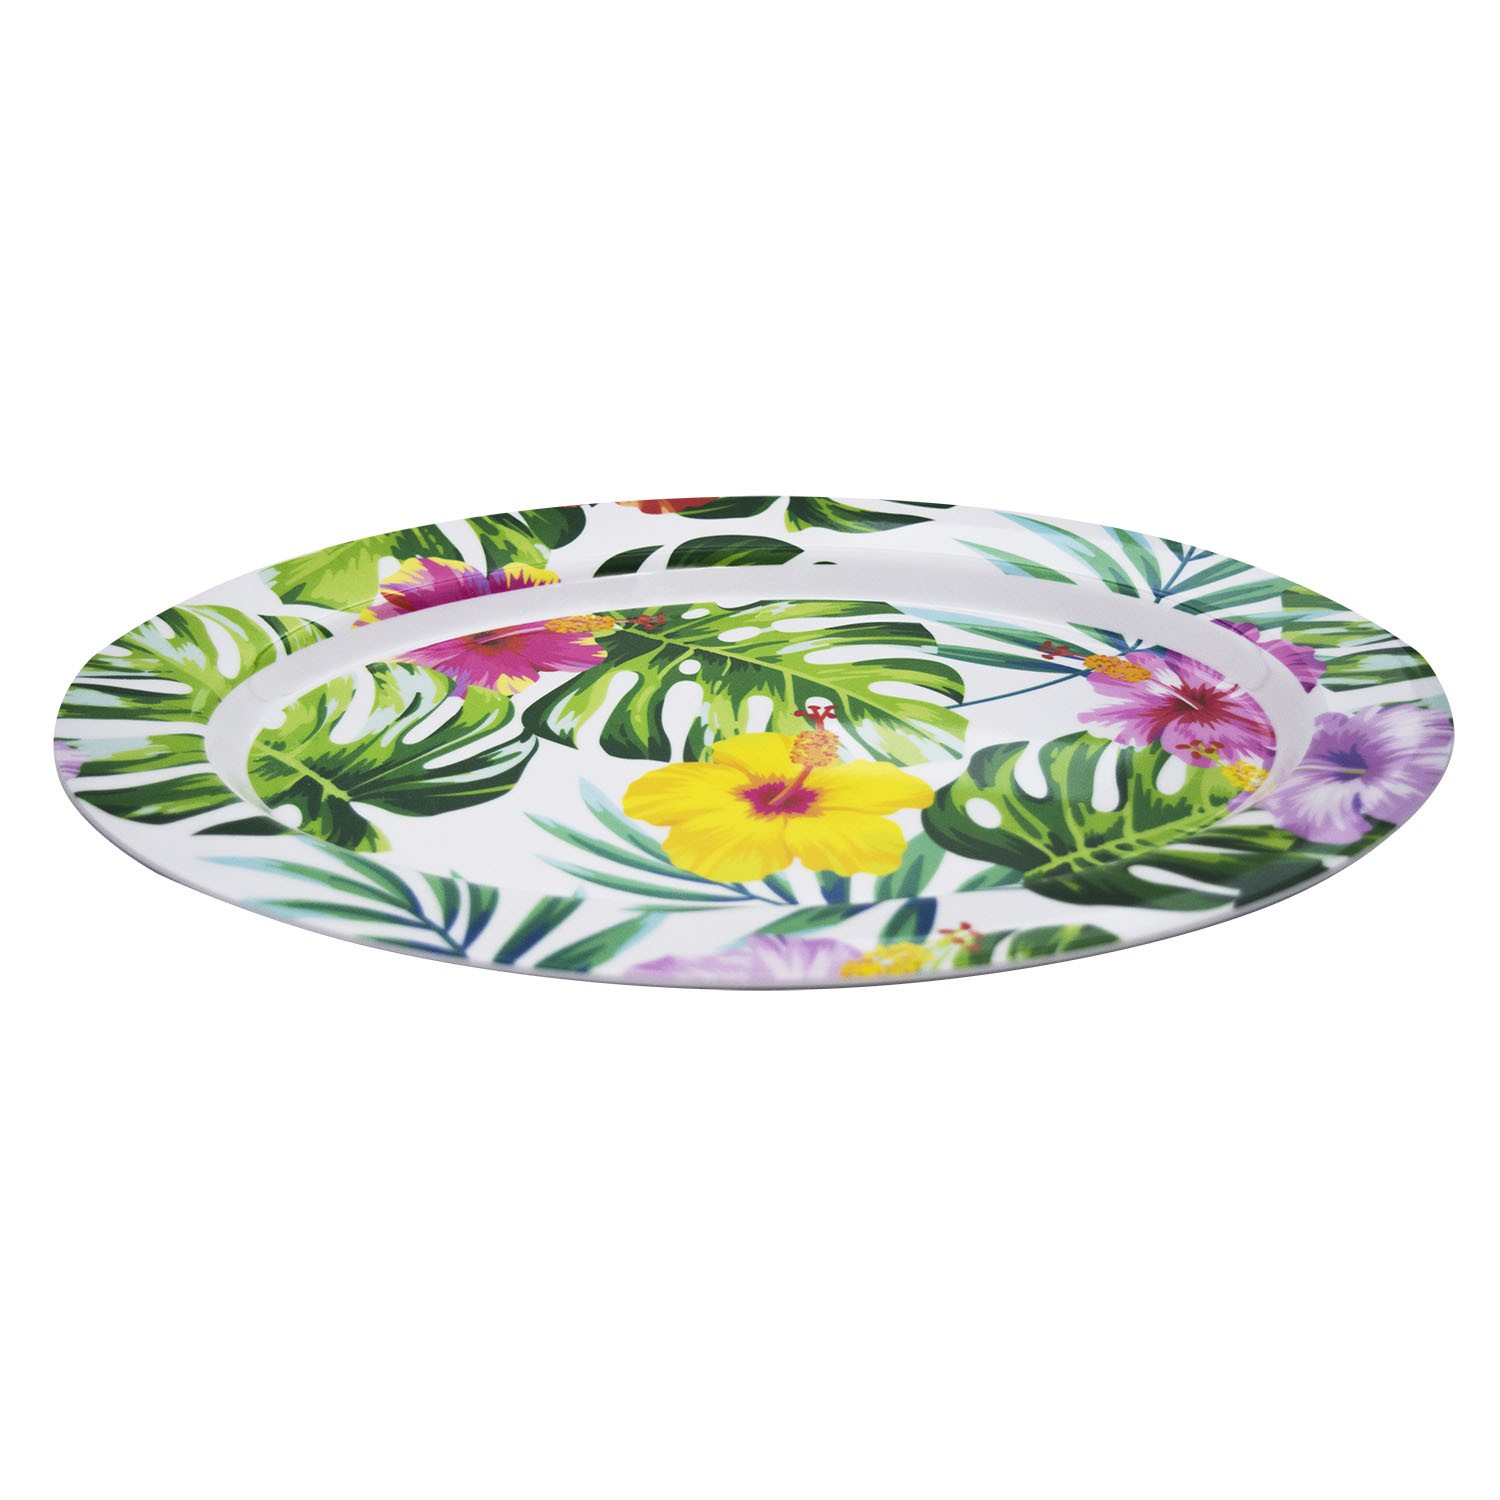 TRAVESSA OVAL TROPICAL 35,5X26CM - YIN'S HOME